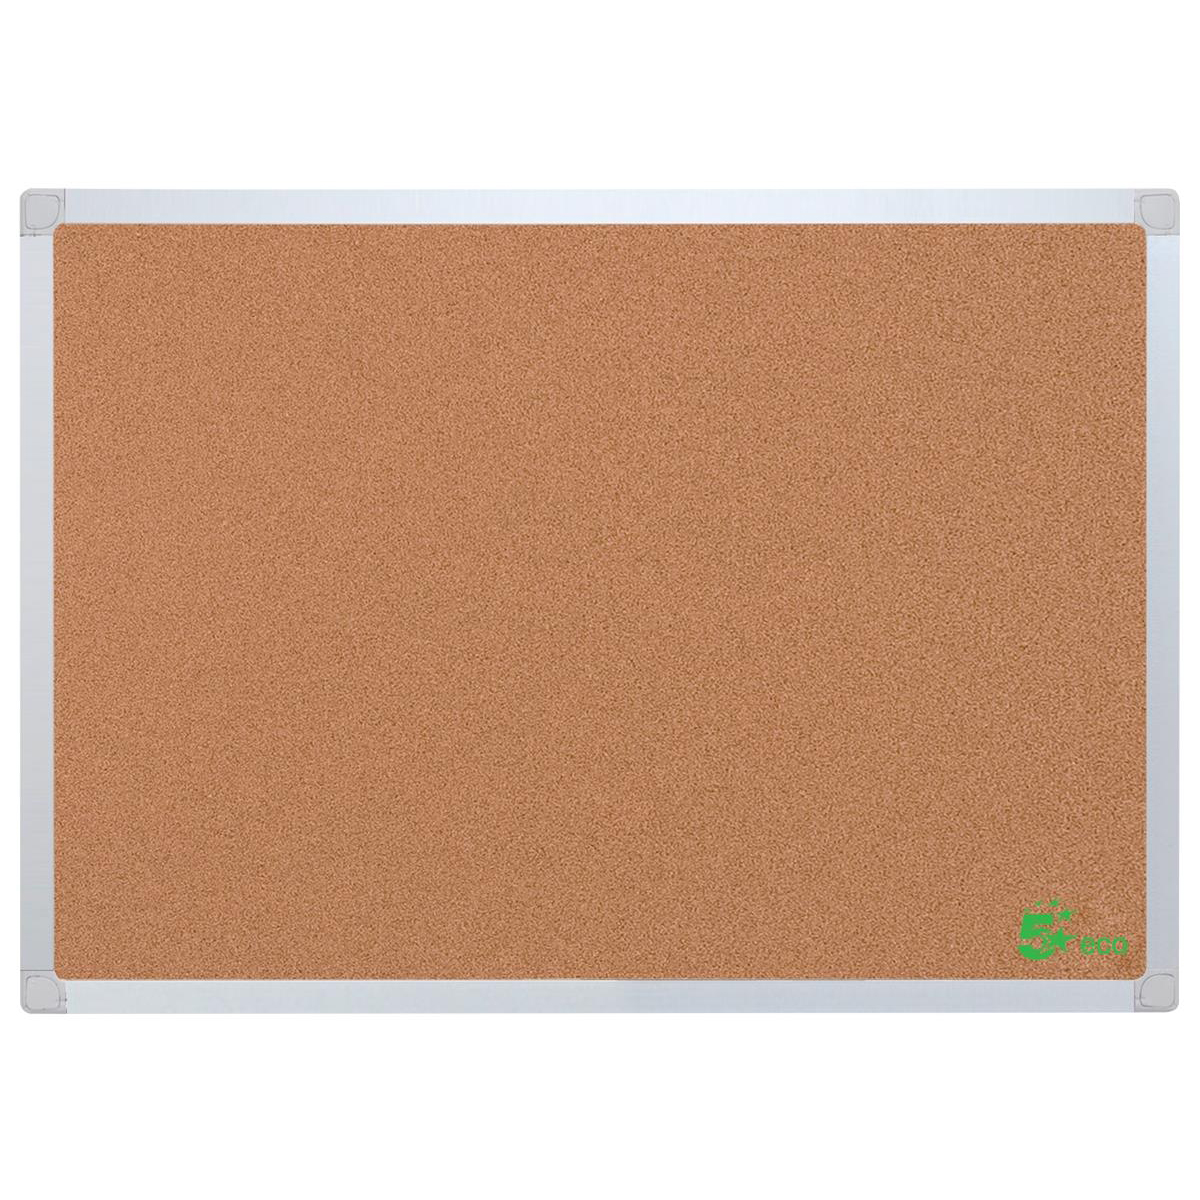 Cork 5 Star Office Cork Board with Wall Fixing Kit Aluminium Frame W1200xH900mm